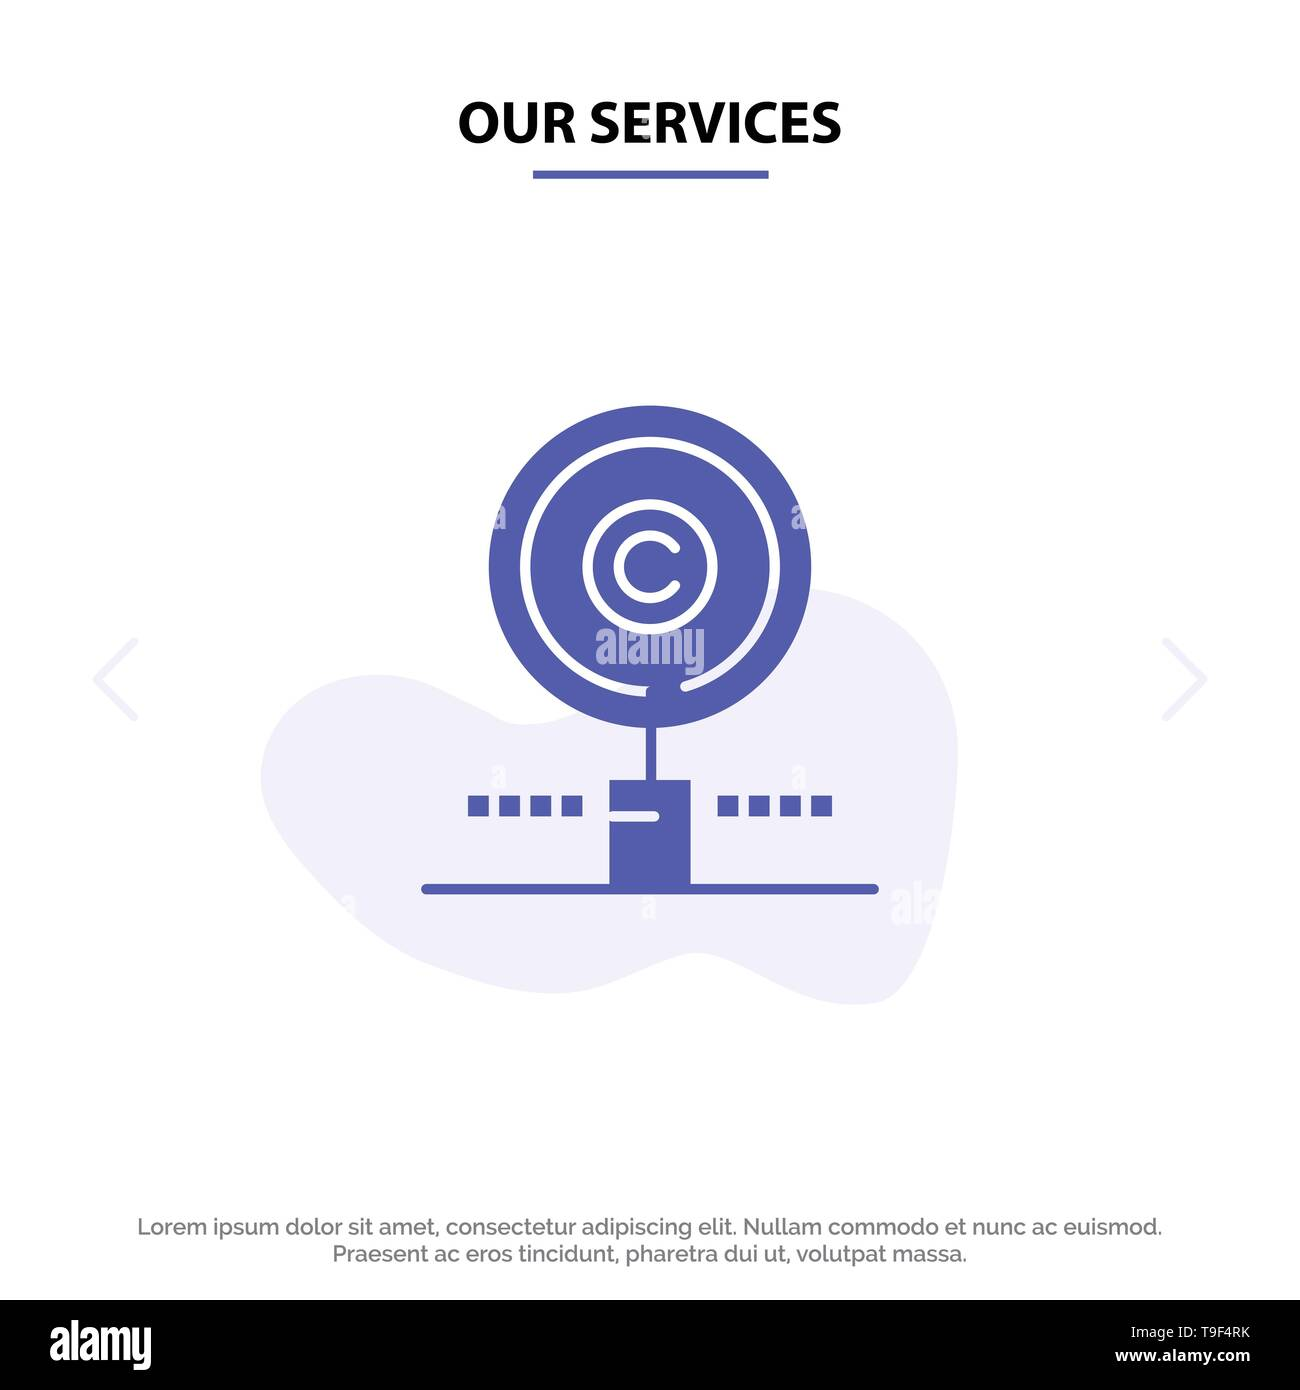 Our Services Content, Copyright, Find, Owner, Property Solid Glyph Icon Web card Template - Stock Image